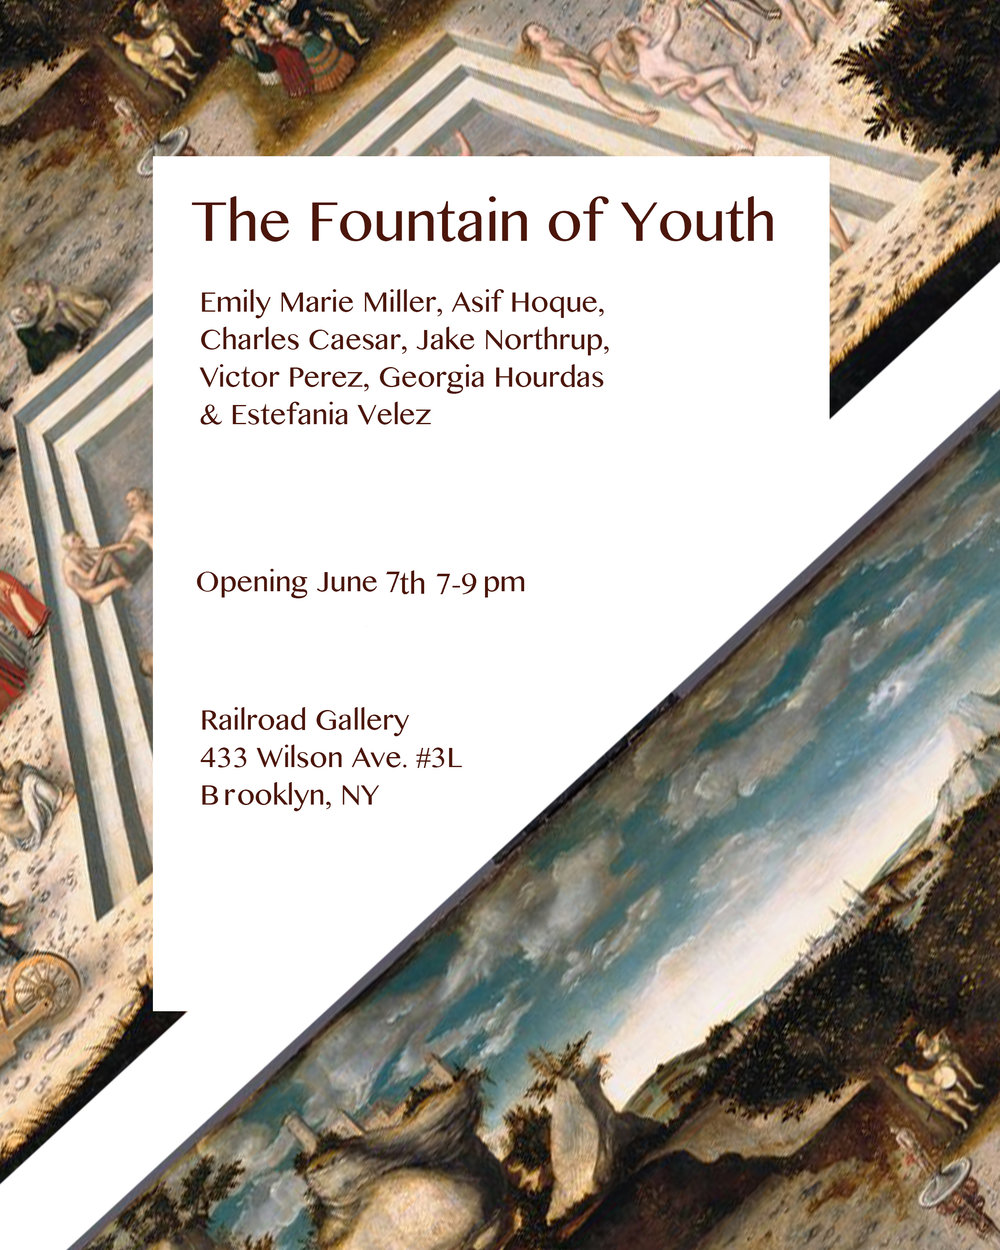 I recently curated and organized  The Fountain of Youth . Thank you to the wonderful artists who participated and co-organized this exhibition: Georgia Hourdas, Jake Northrup, Estefania Velez, Charles Caesar, Victor Perez, and Asif Hoque.